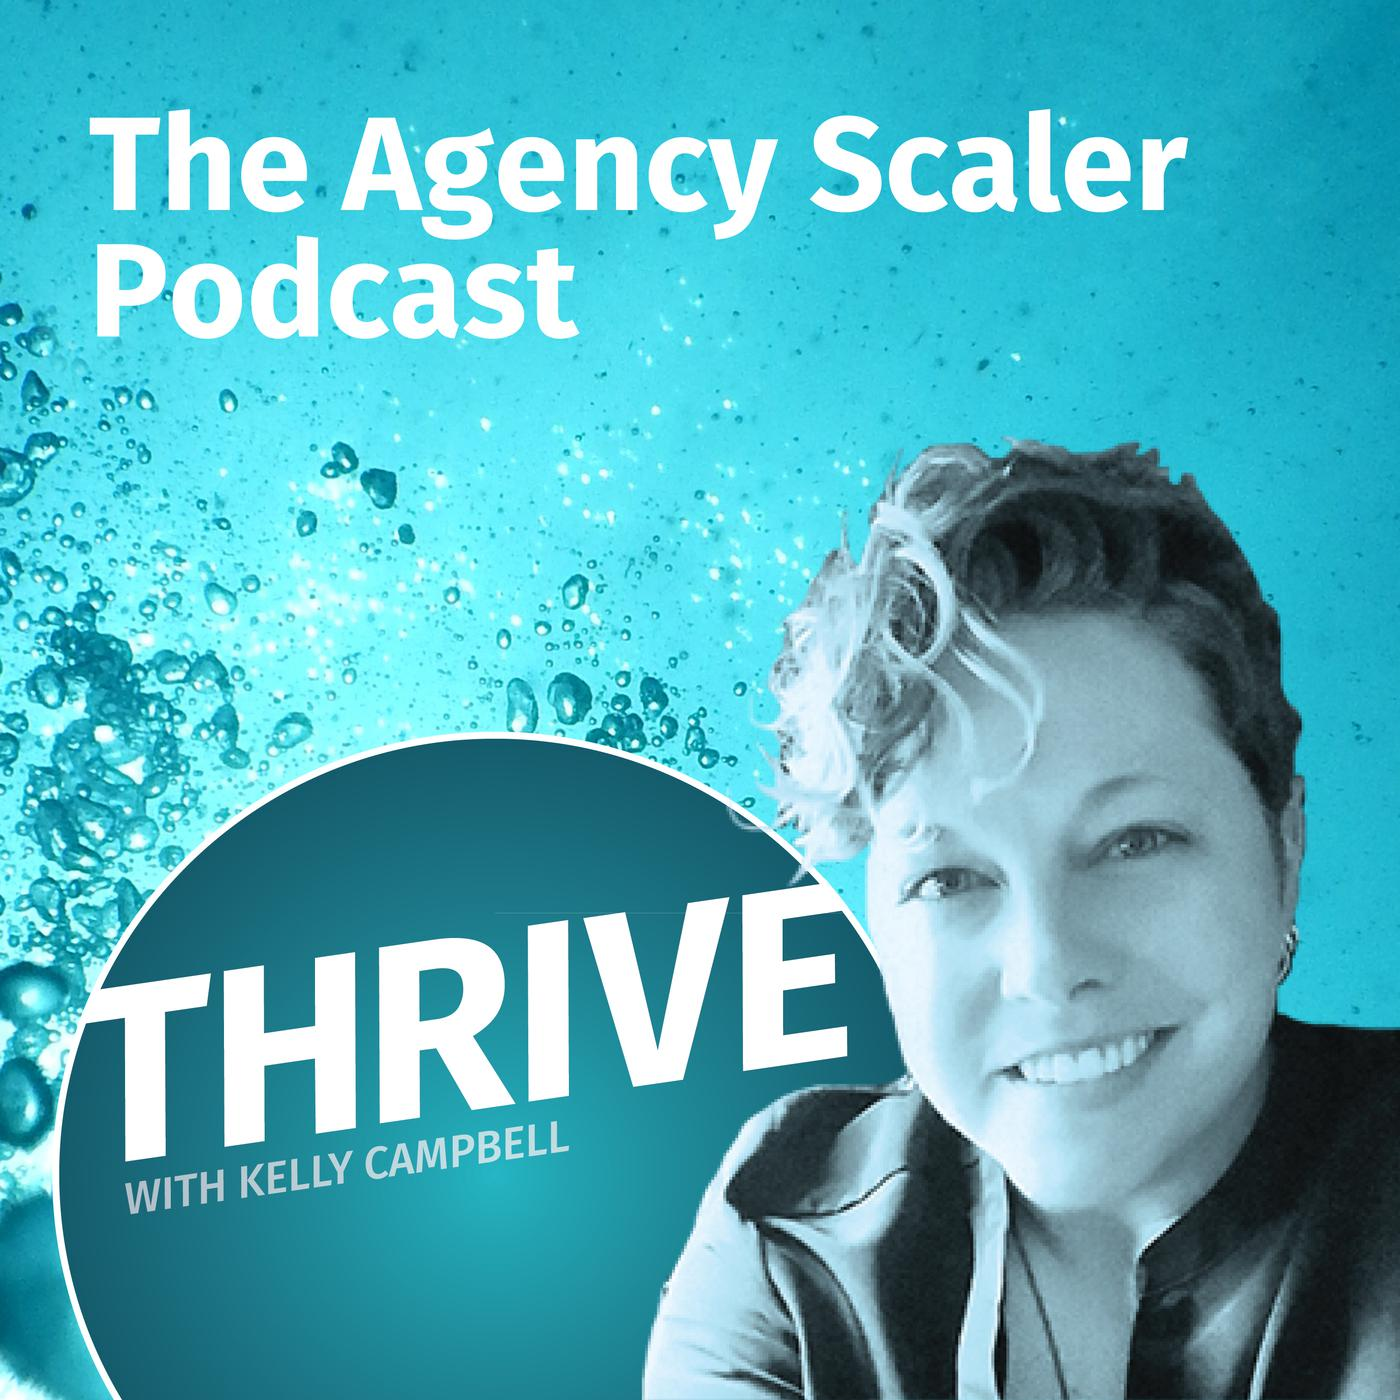 The Agency Scaler Podcast